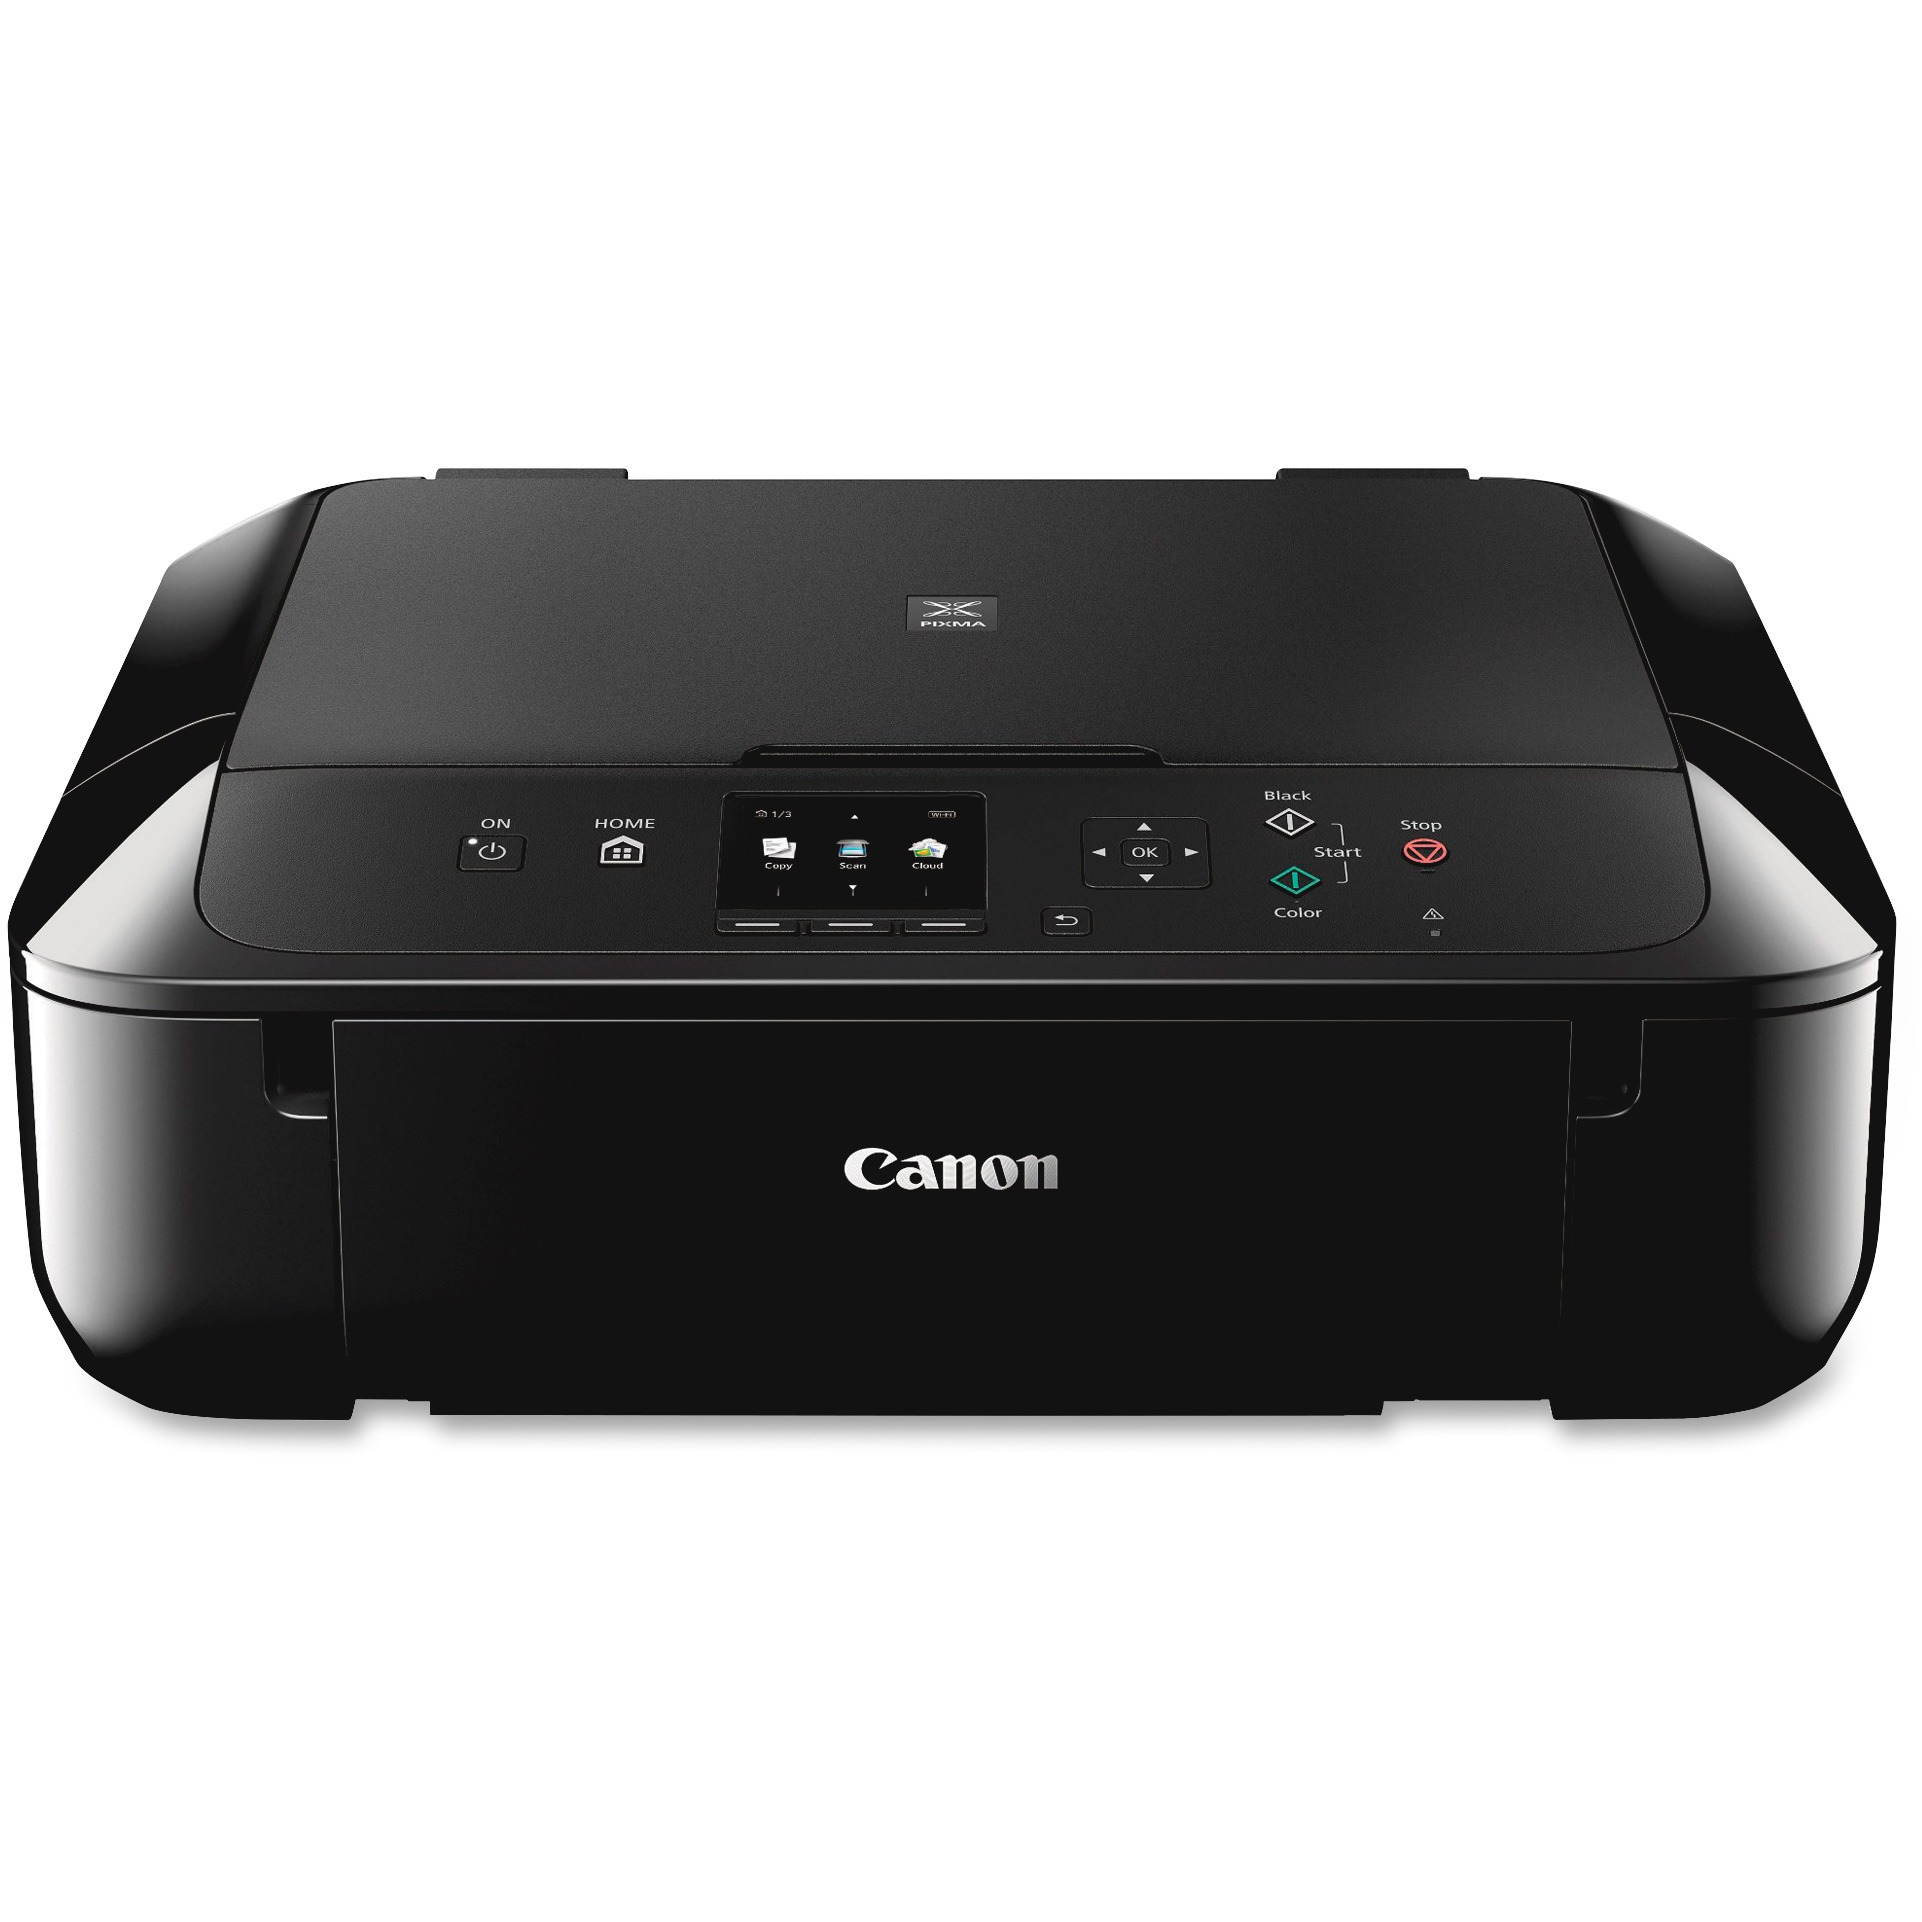 CANON MG5720 TREIBER WINDOWS XP